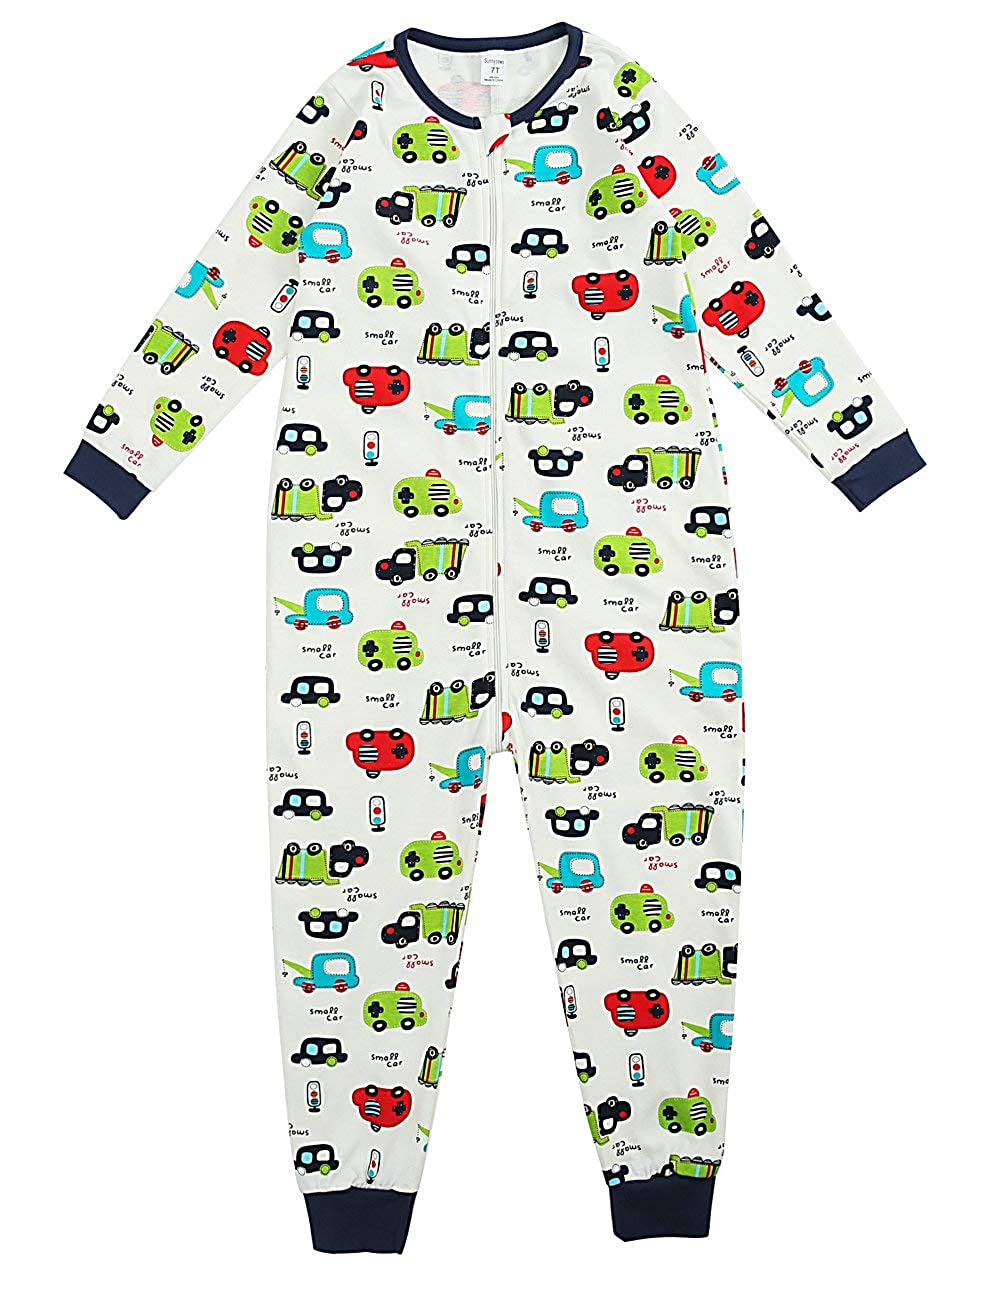 Sunnycows Kids Onesie Pajamas Cotton Easy Zip Open One Piece Pajamas for Children Size 3T-9T …